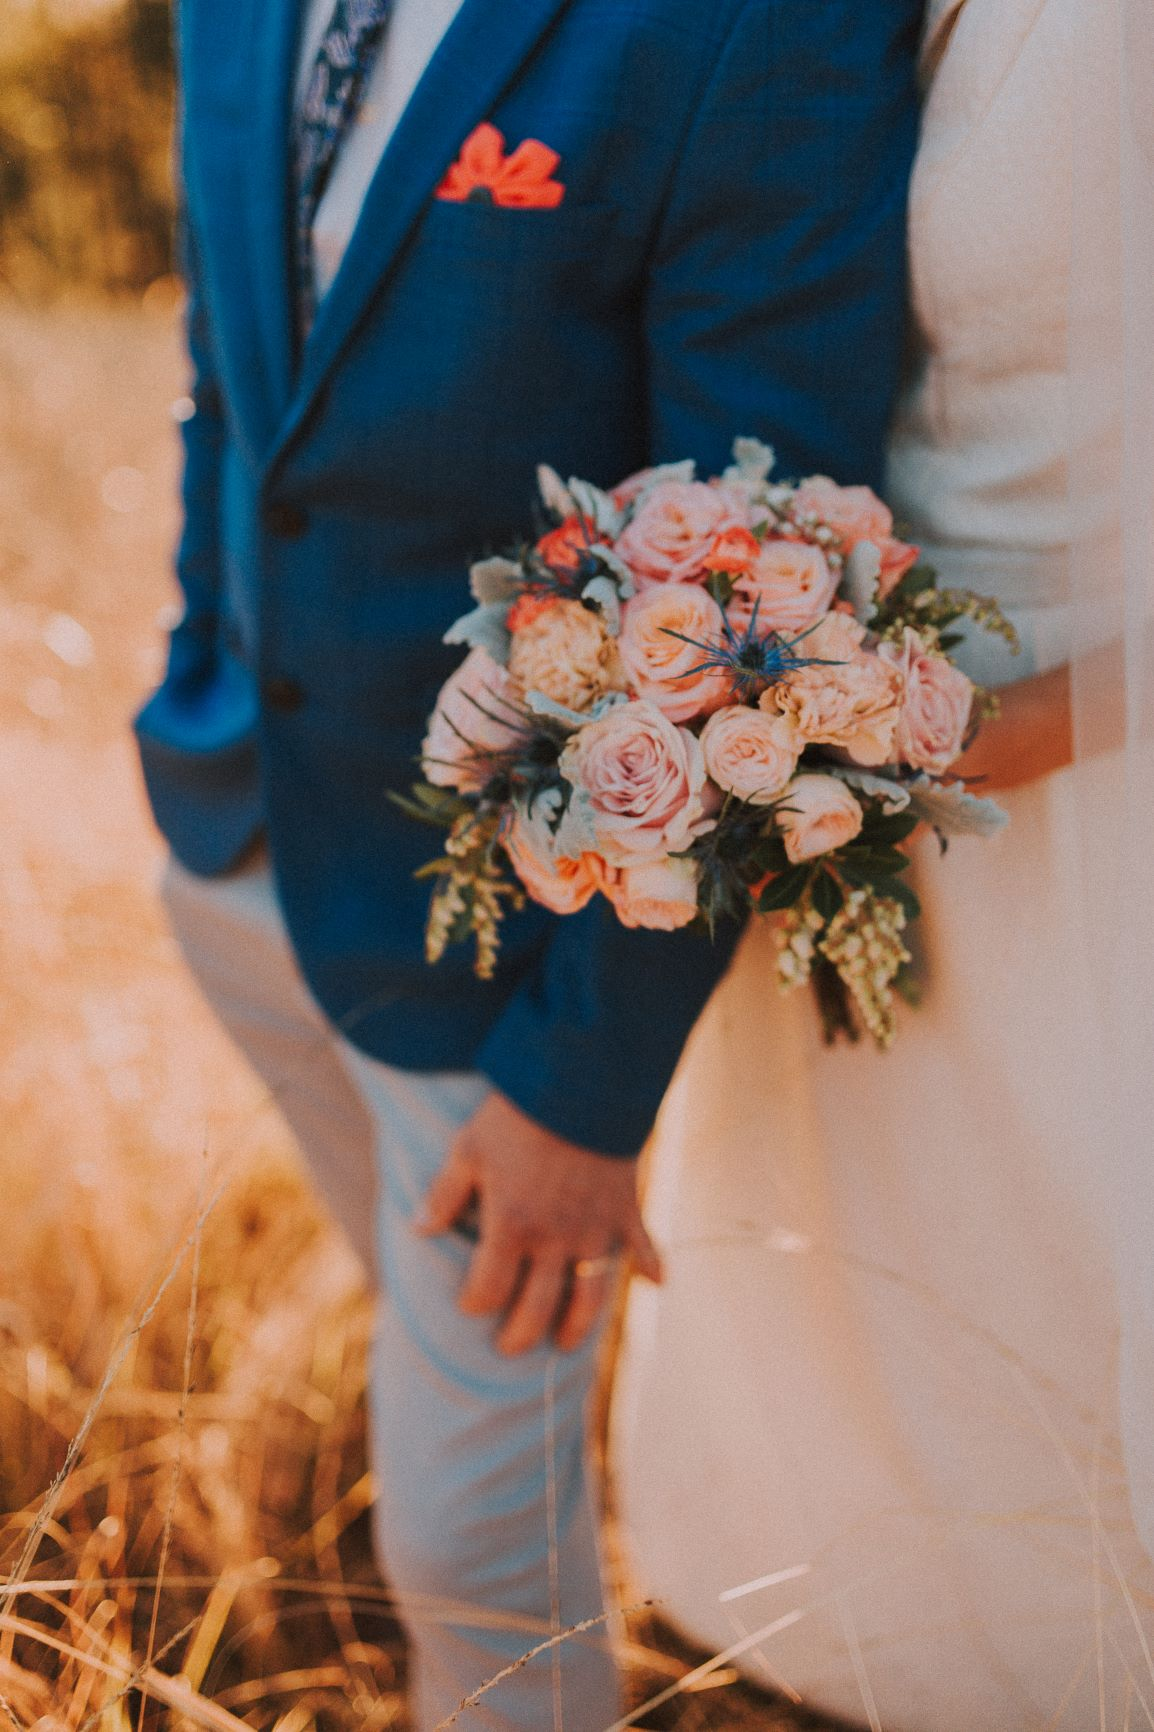 Soft pink roses, apricot spray roses, sea holly and cascading andromeda